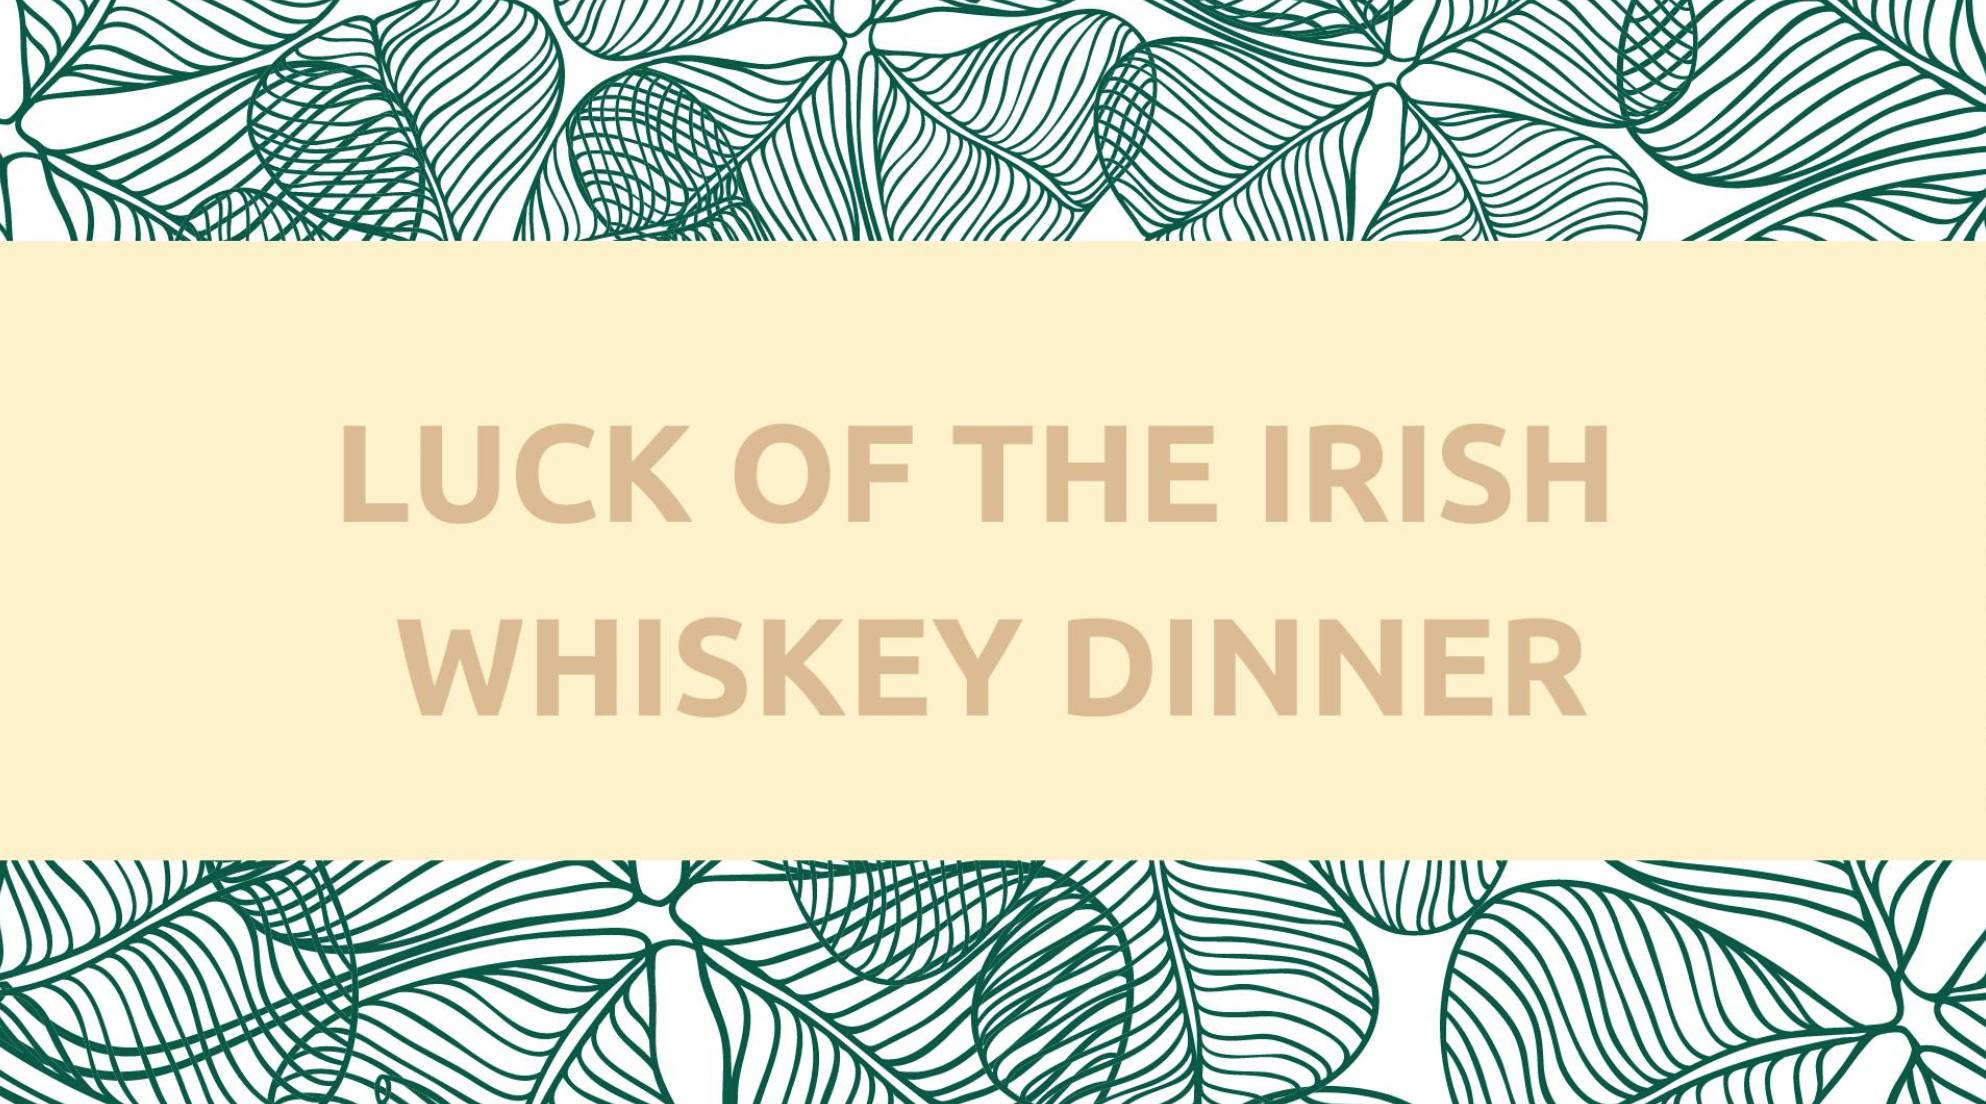 Luck of the Irish Whiskey Dinner